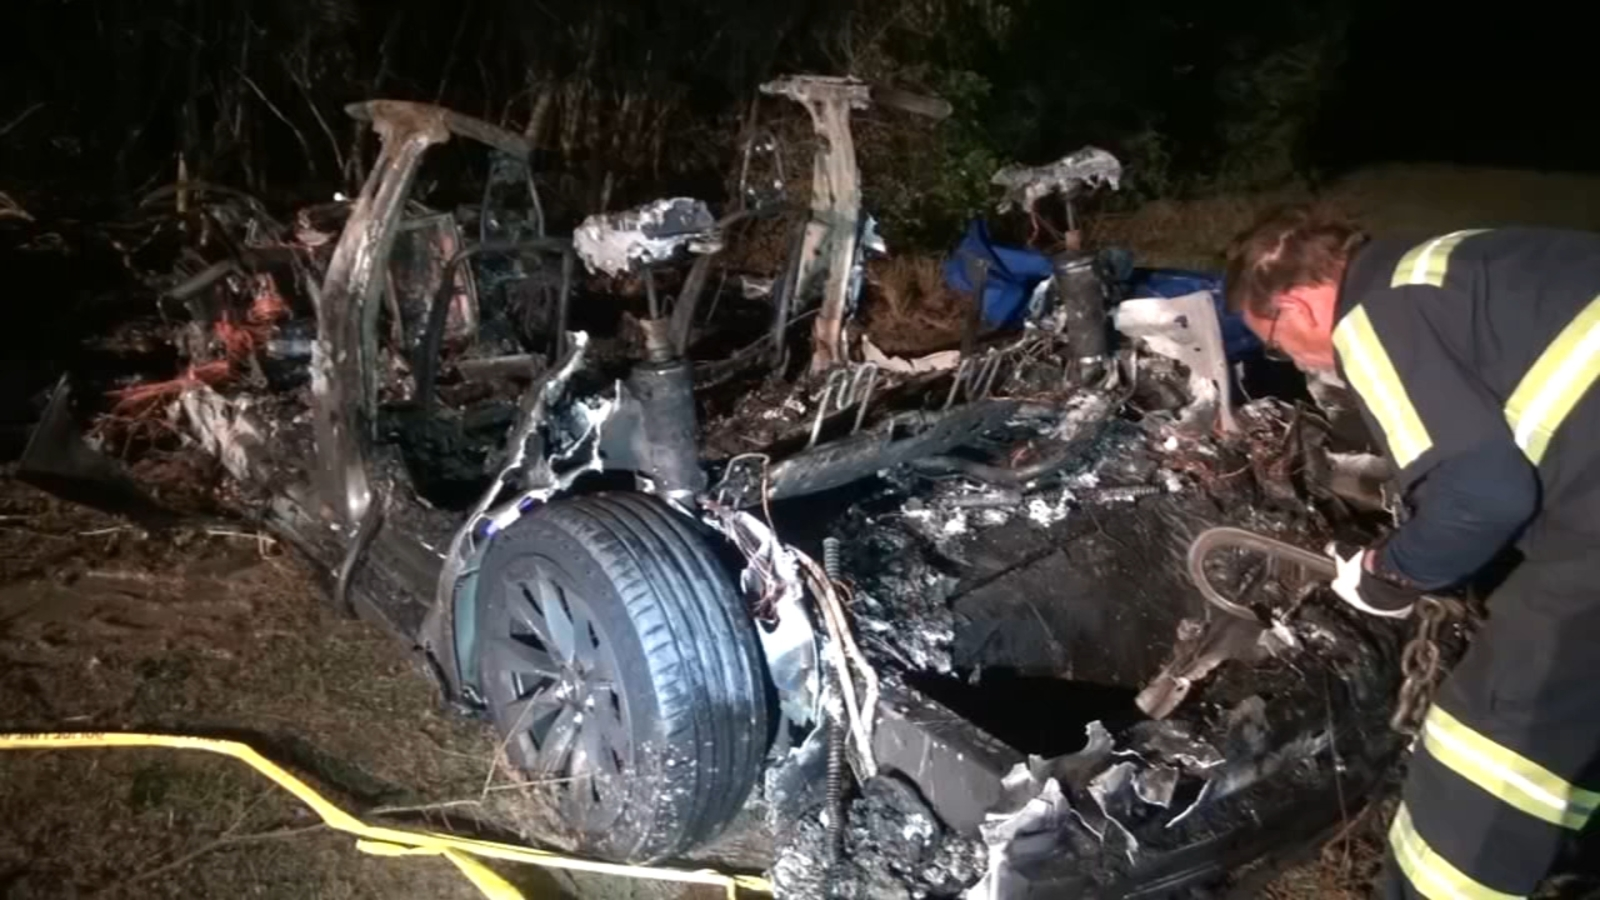 Investigators in Texas Looking Into Fiery Tesla Car Crash That Killed Two